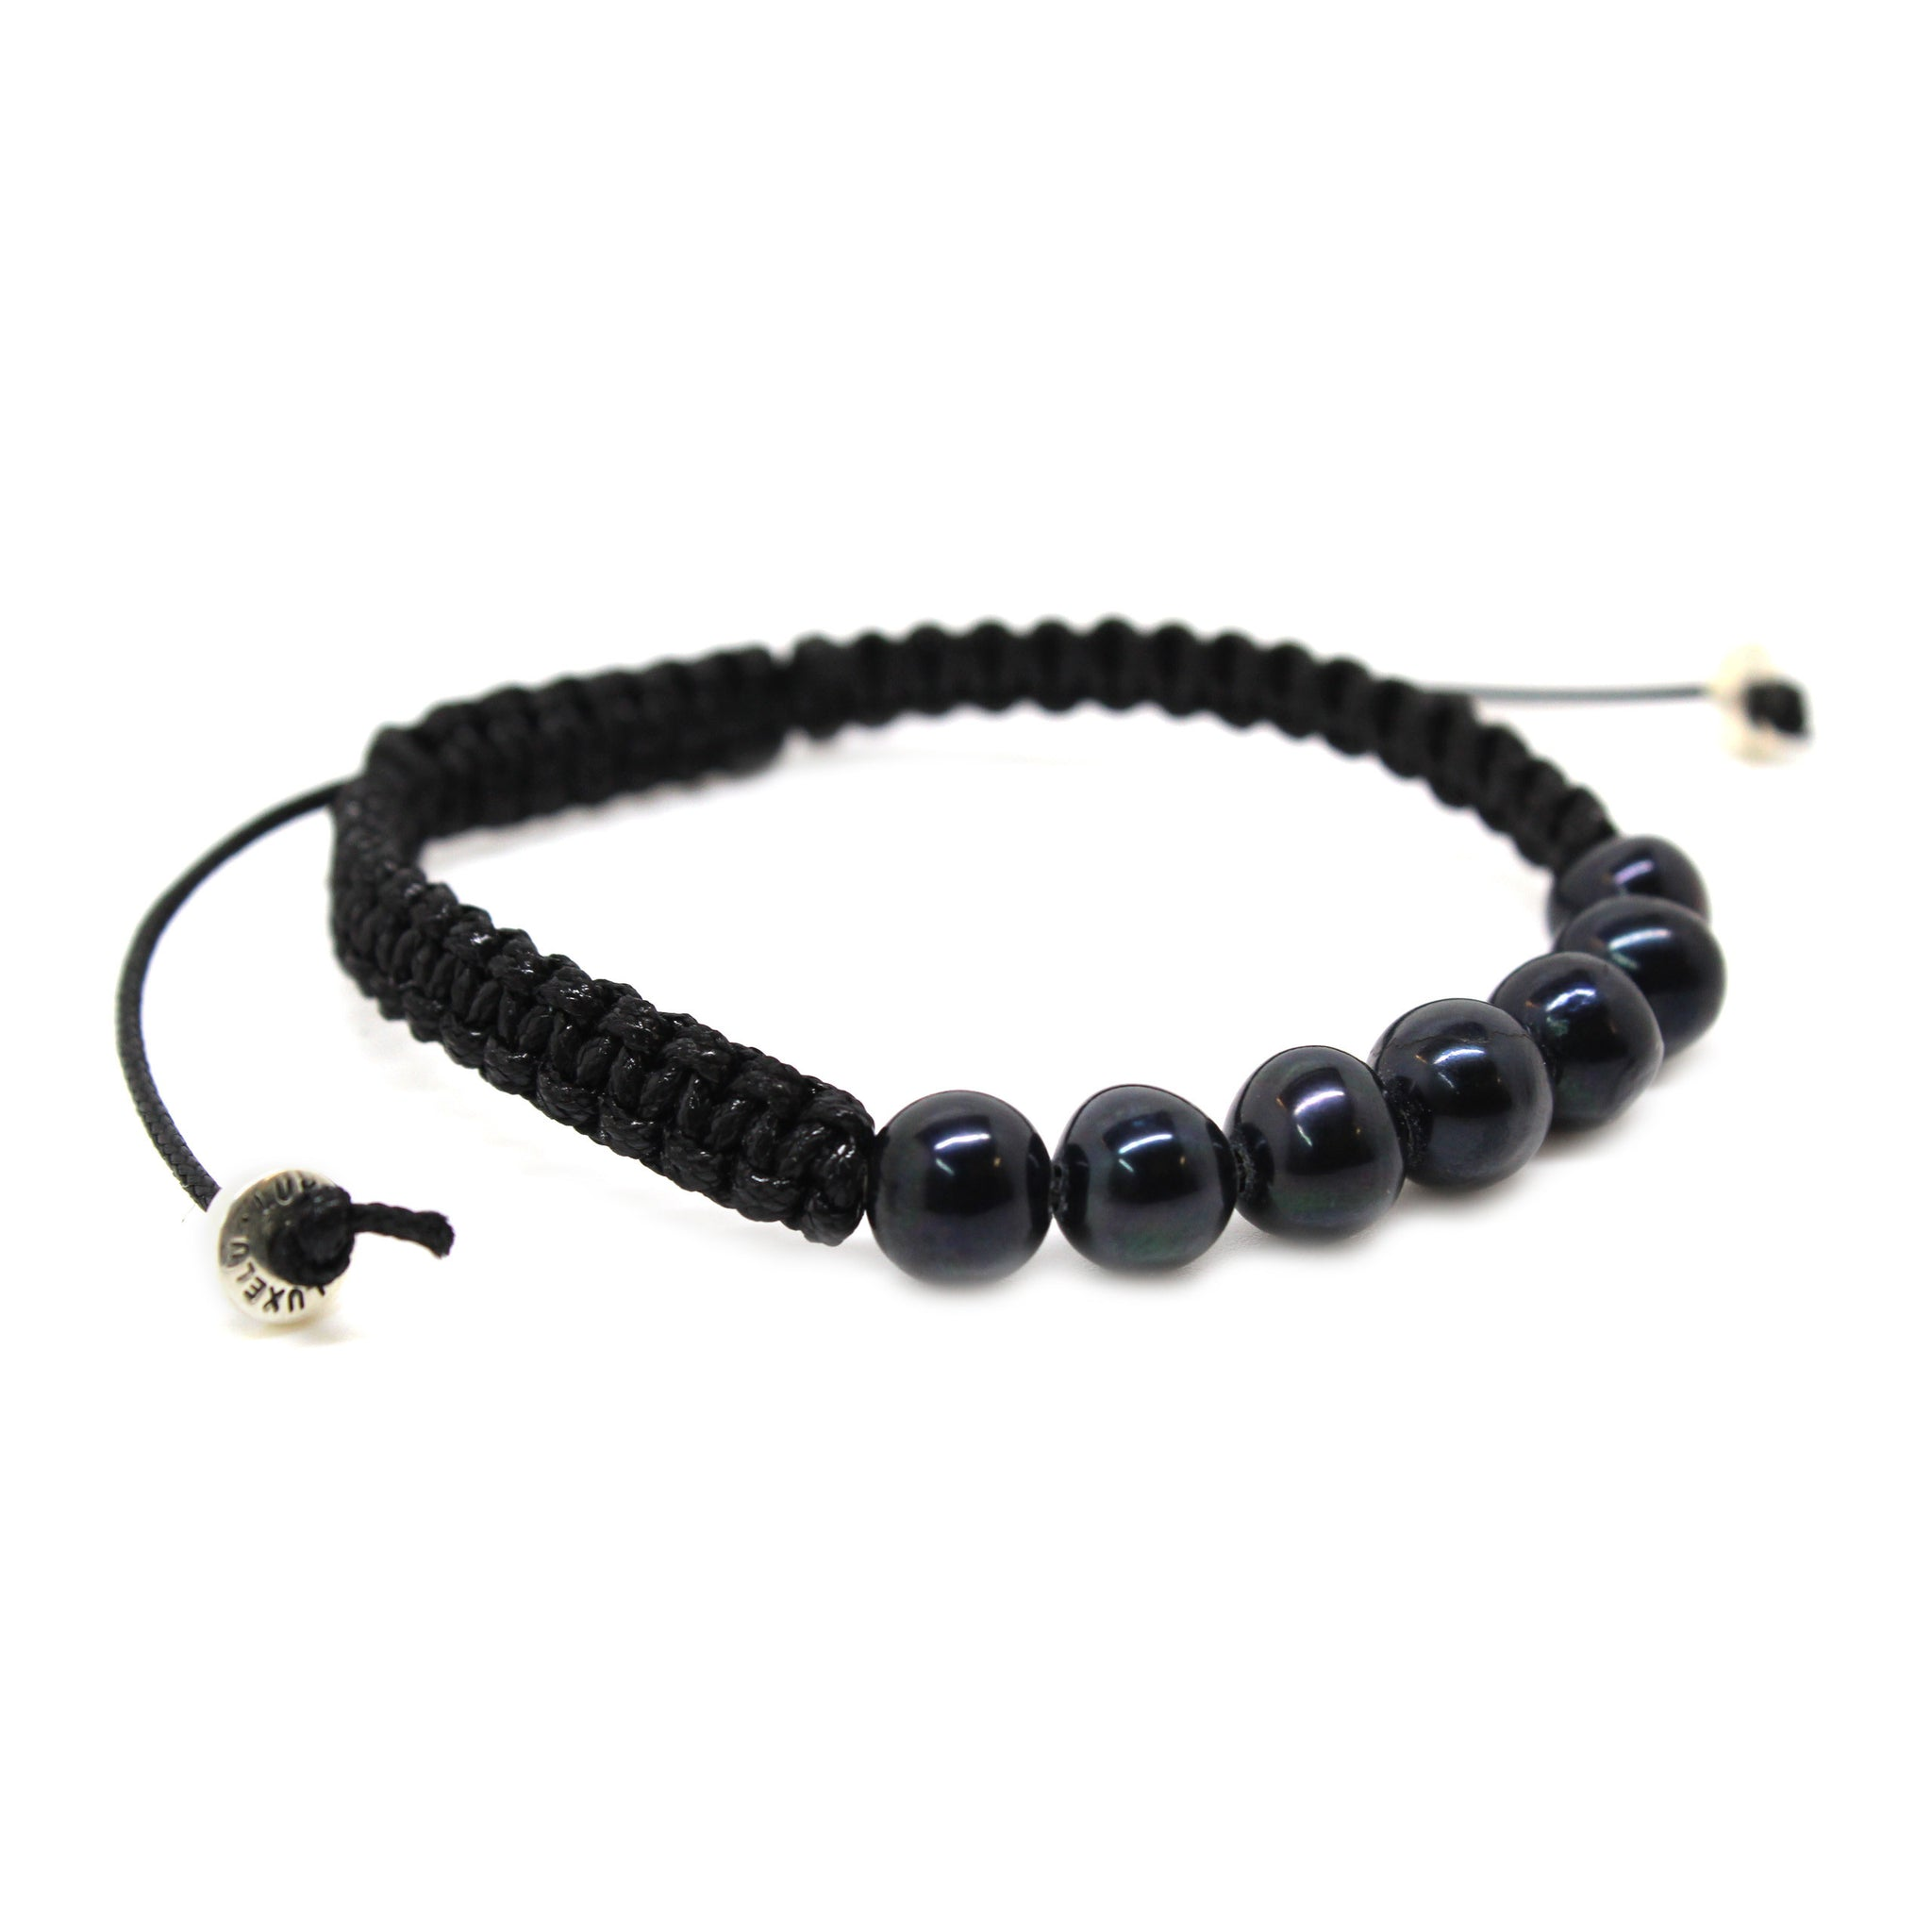 black fashion with adjustable mens products jewelry women men magnet bracelet leather cheap bracelets wholesale long chain